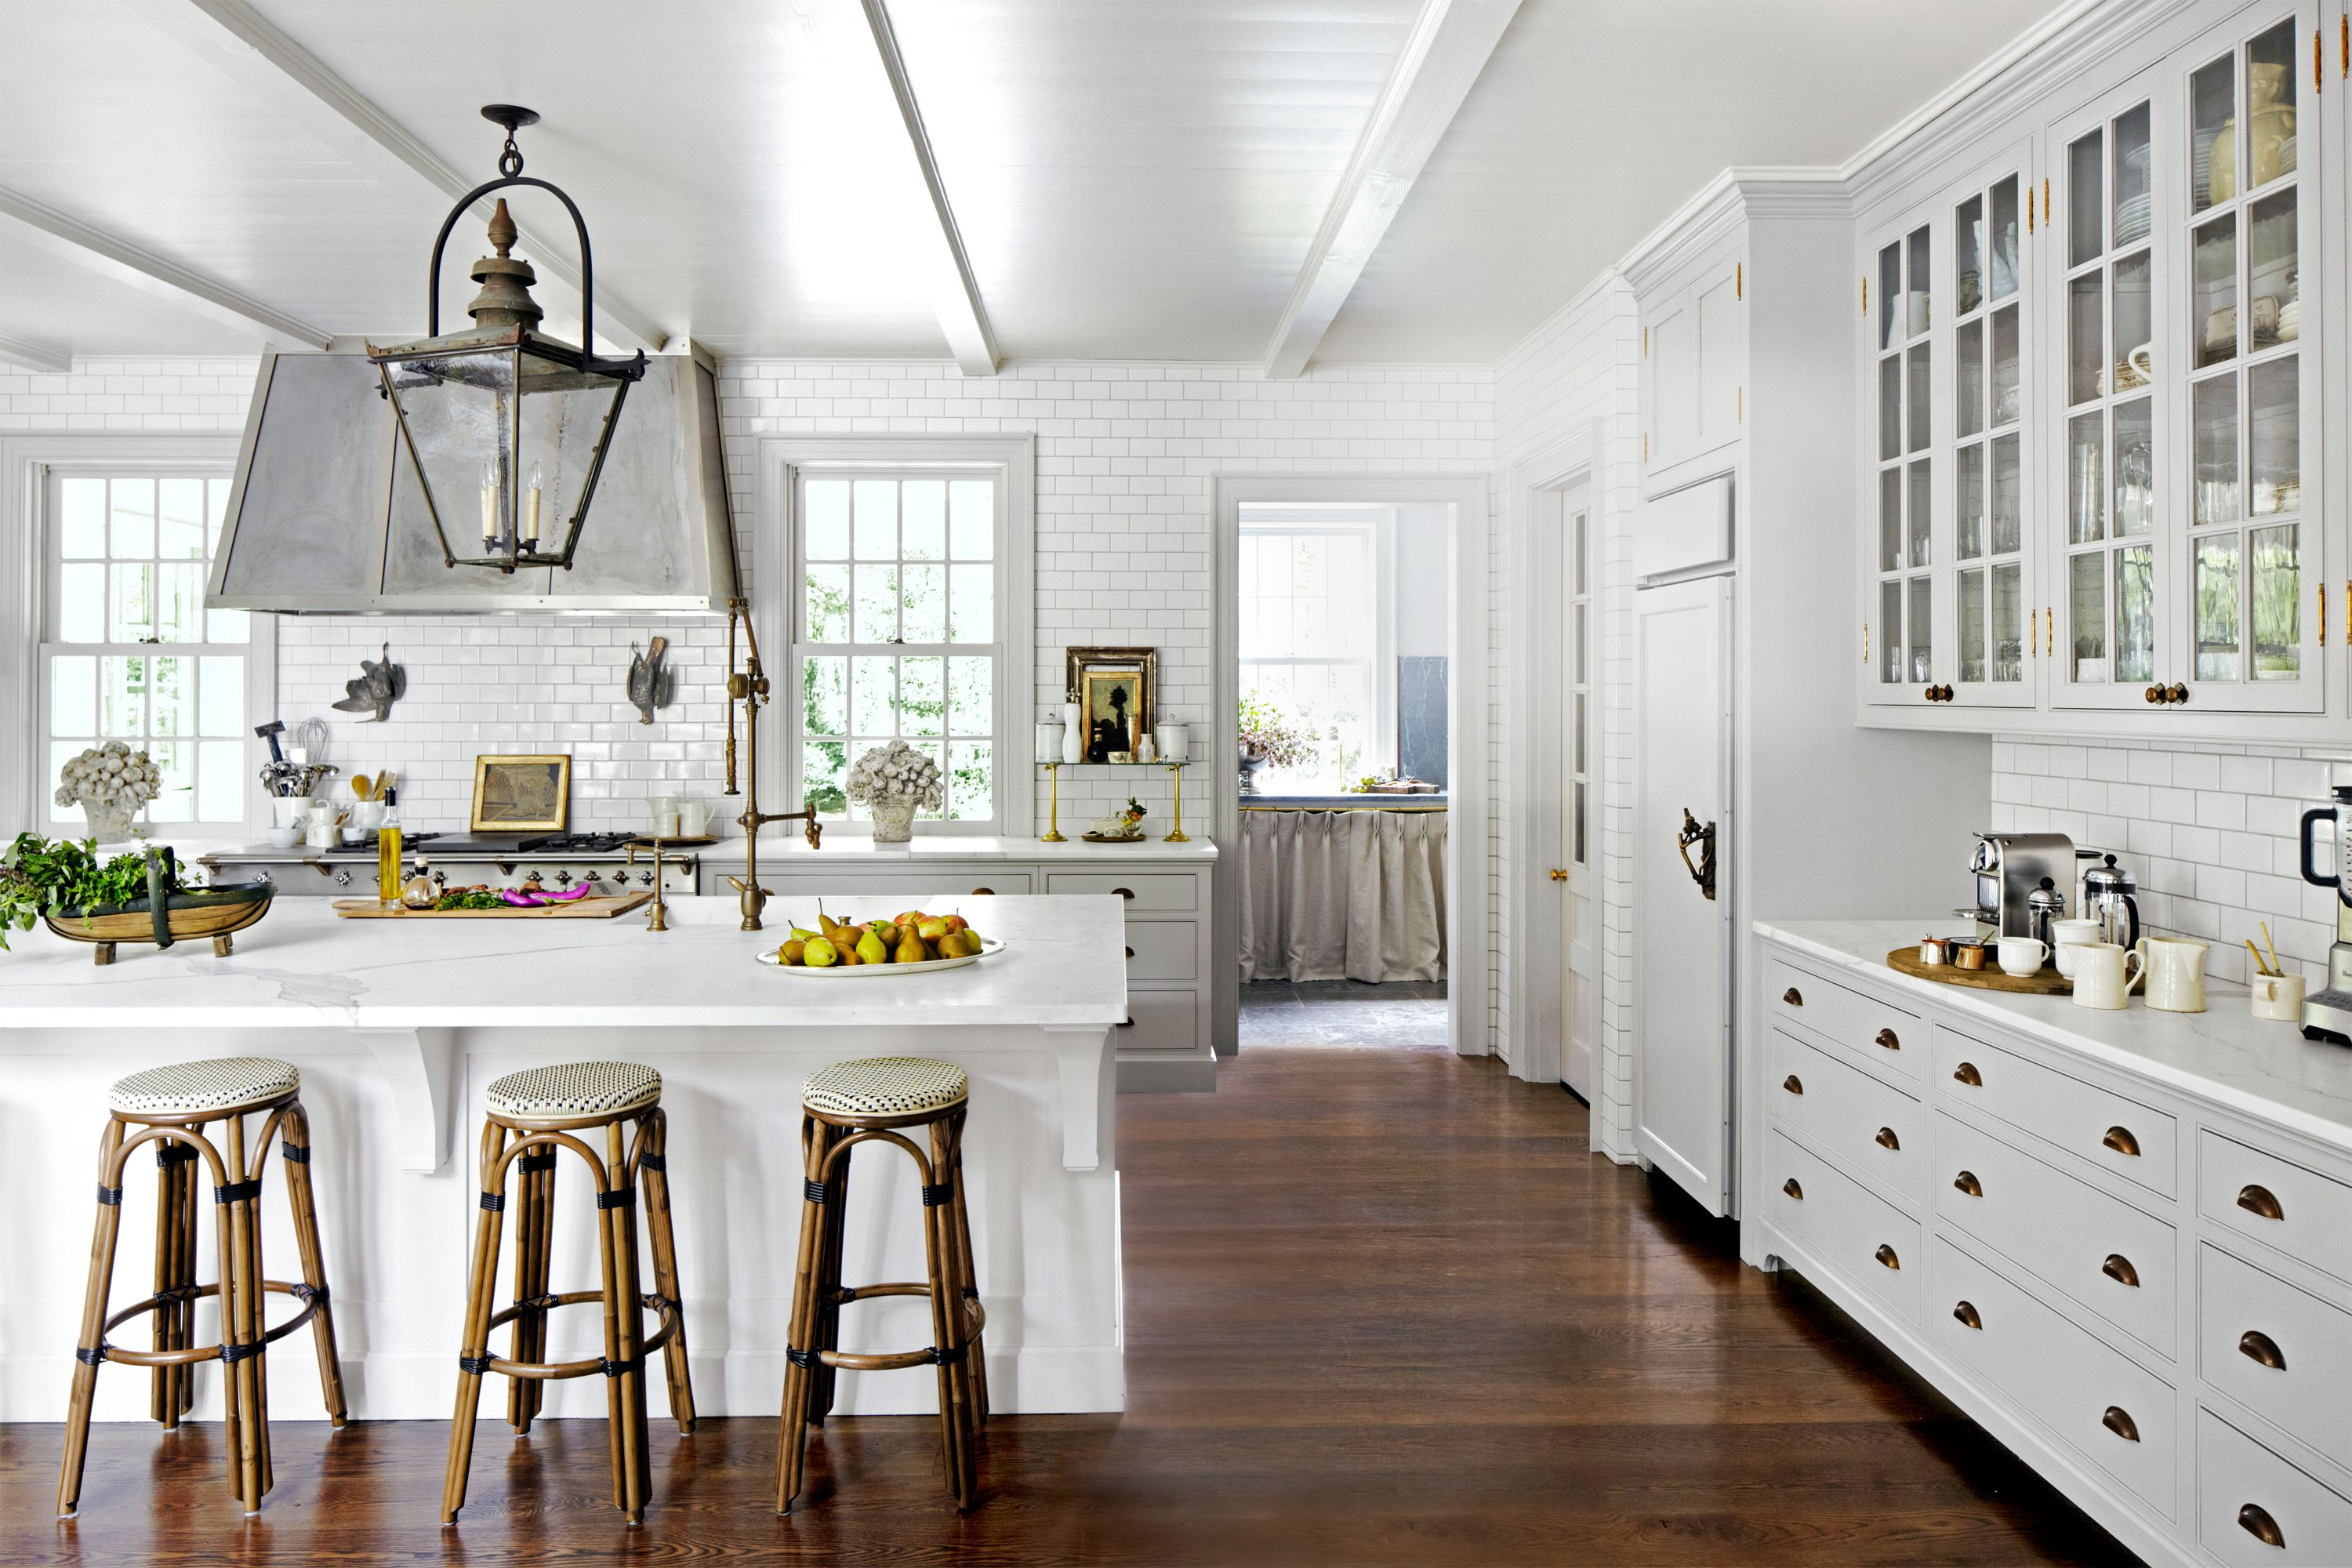 This is an image of kitchen design